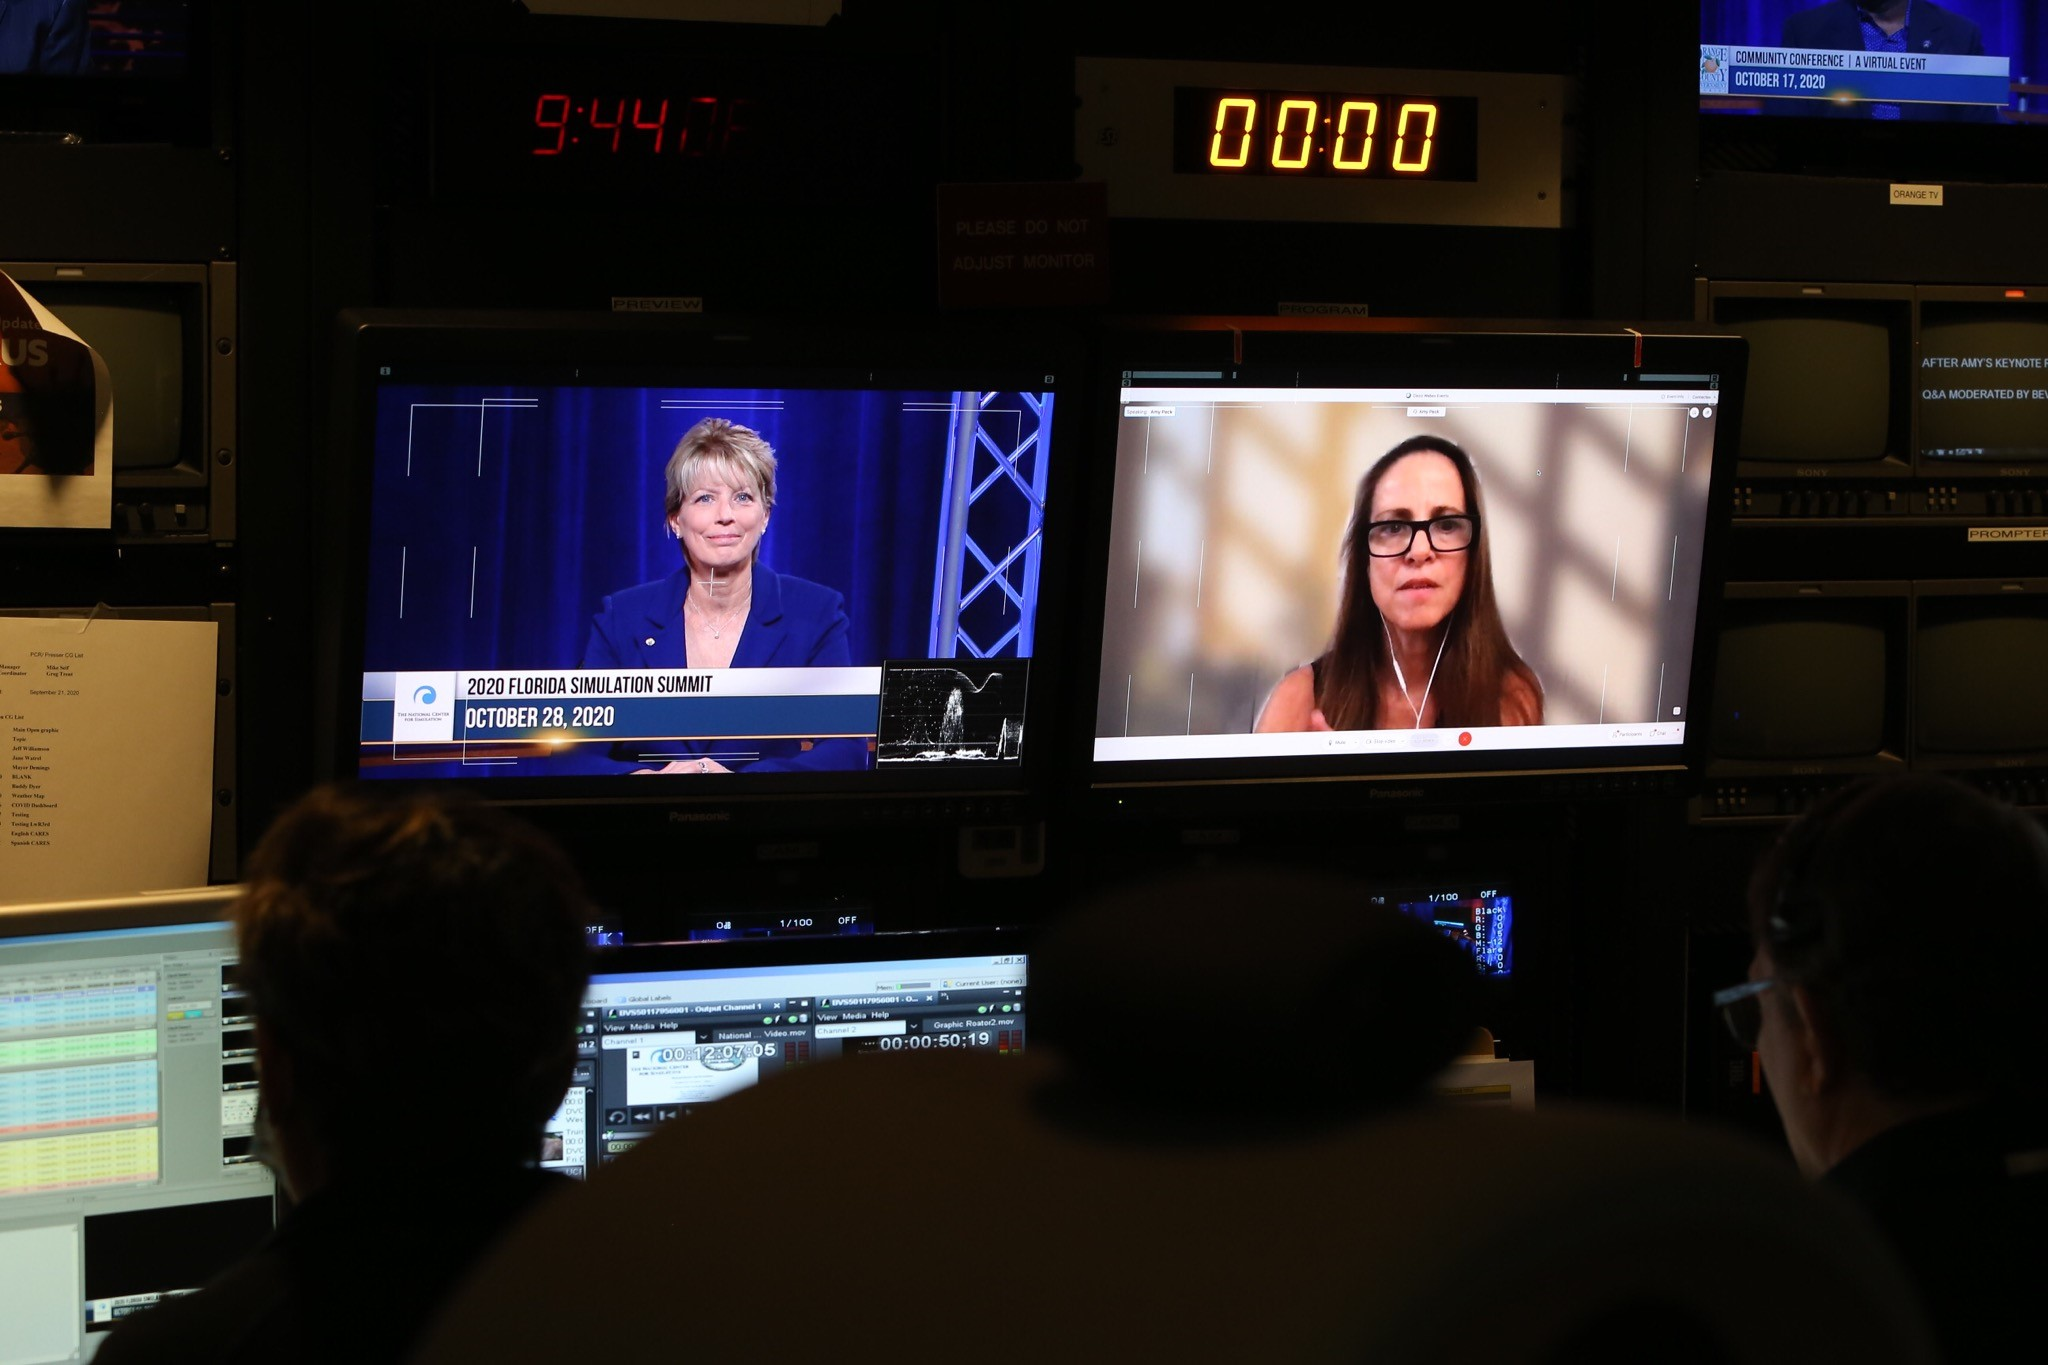 tv screen with two women panelists